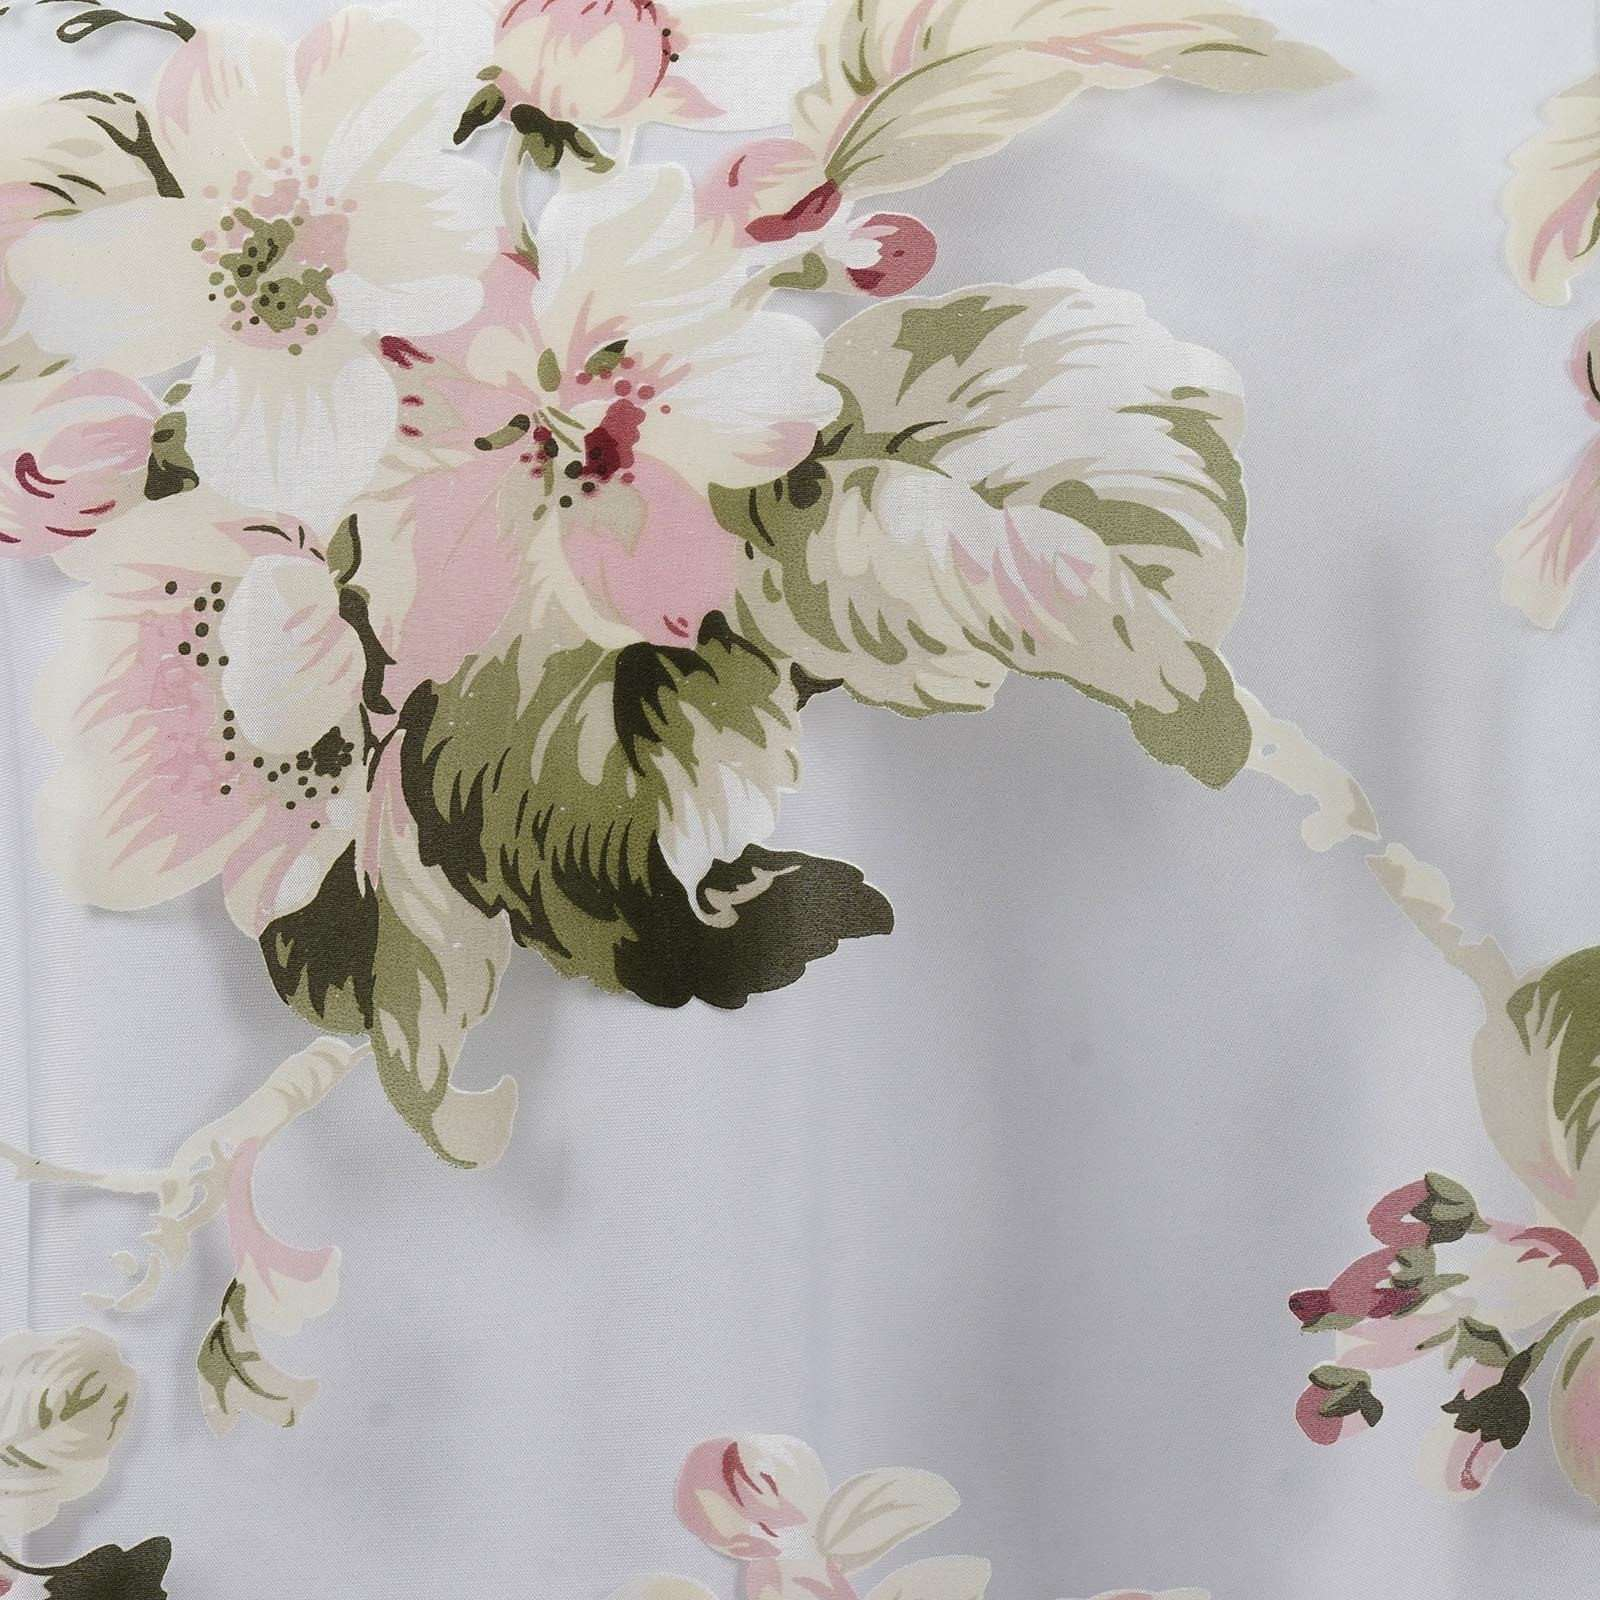 White Sheer Organza Runner With Blush Rose Design For Table Top